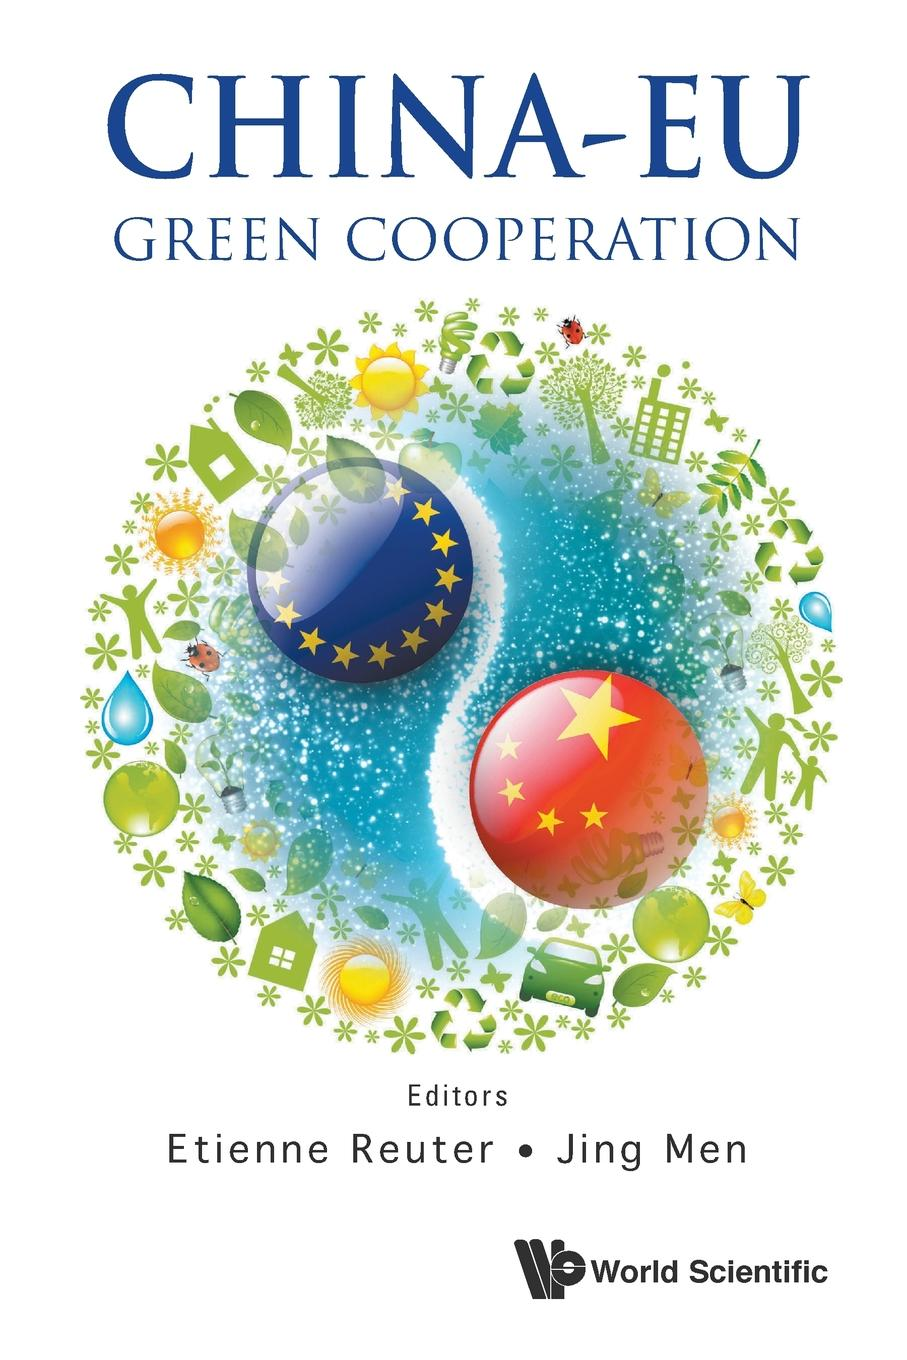 CHINA-EU. GREEN COOPERATION 2016 the new recommendation of the two sides of the two sides of the pineapple service women s clothing split body and european